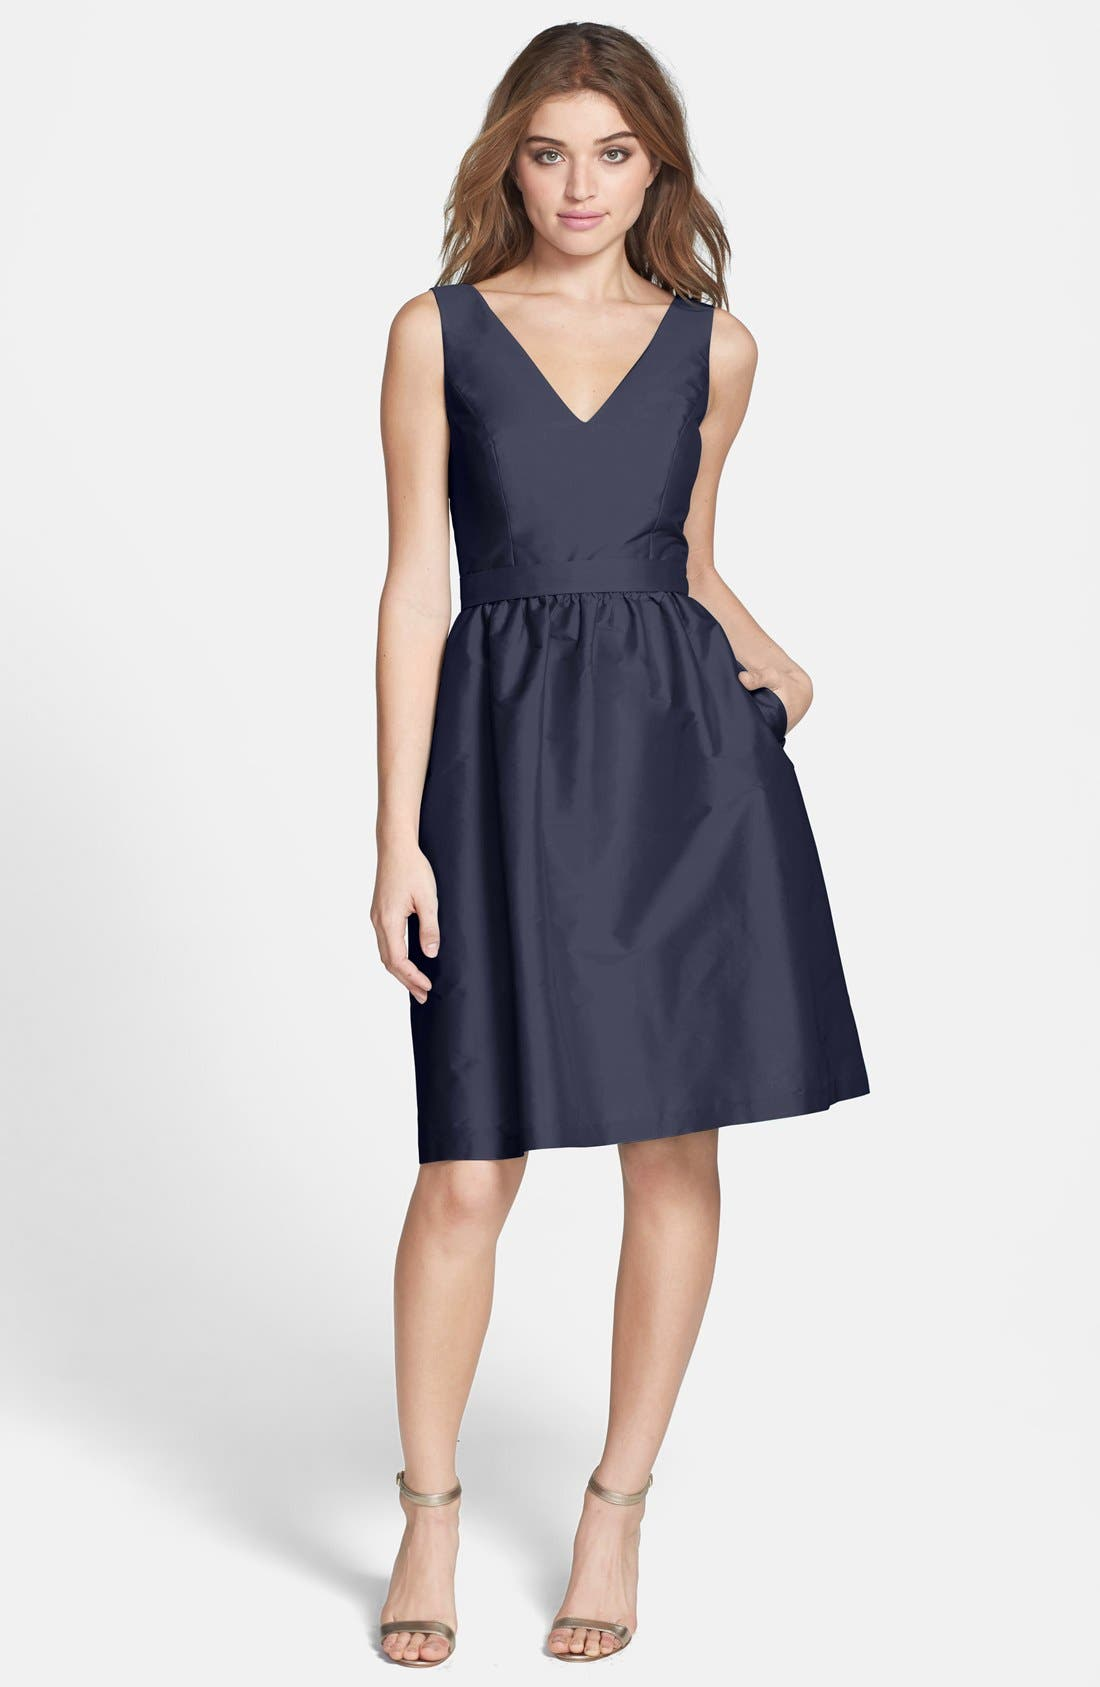 Alternate Image 1 Selected - Alfred Sung Satin Fit & Flare Dress Dress